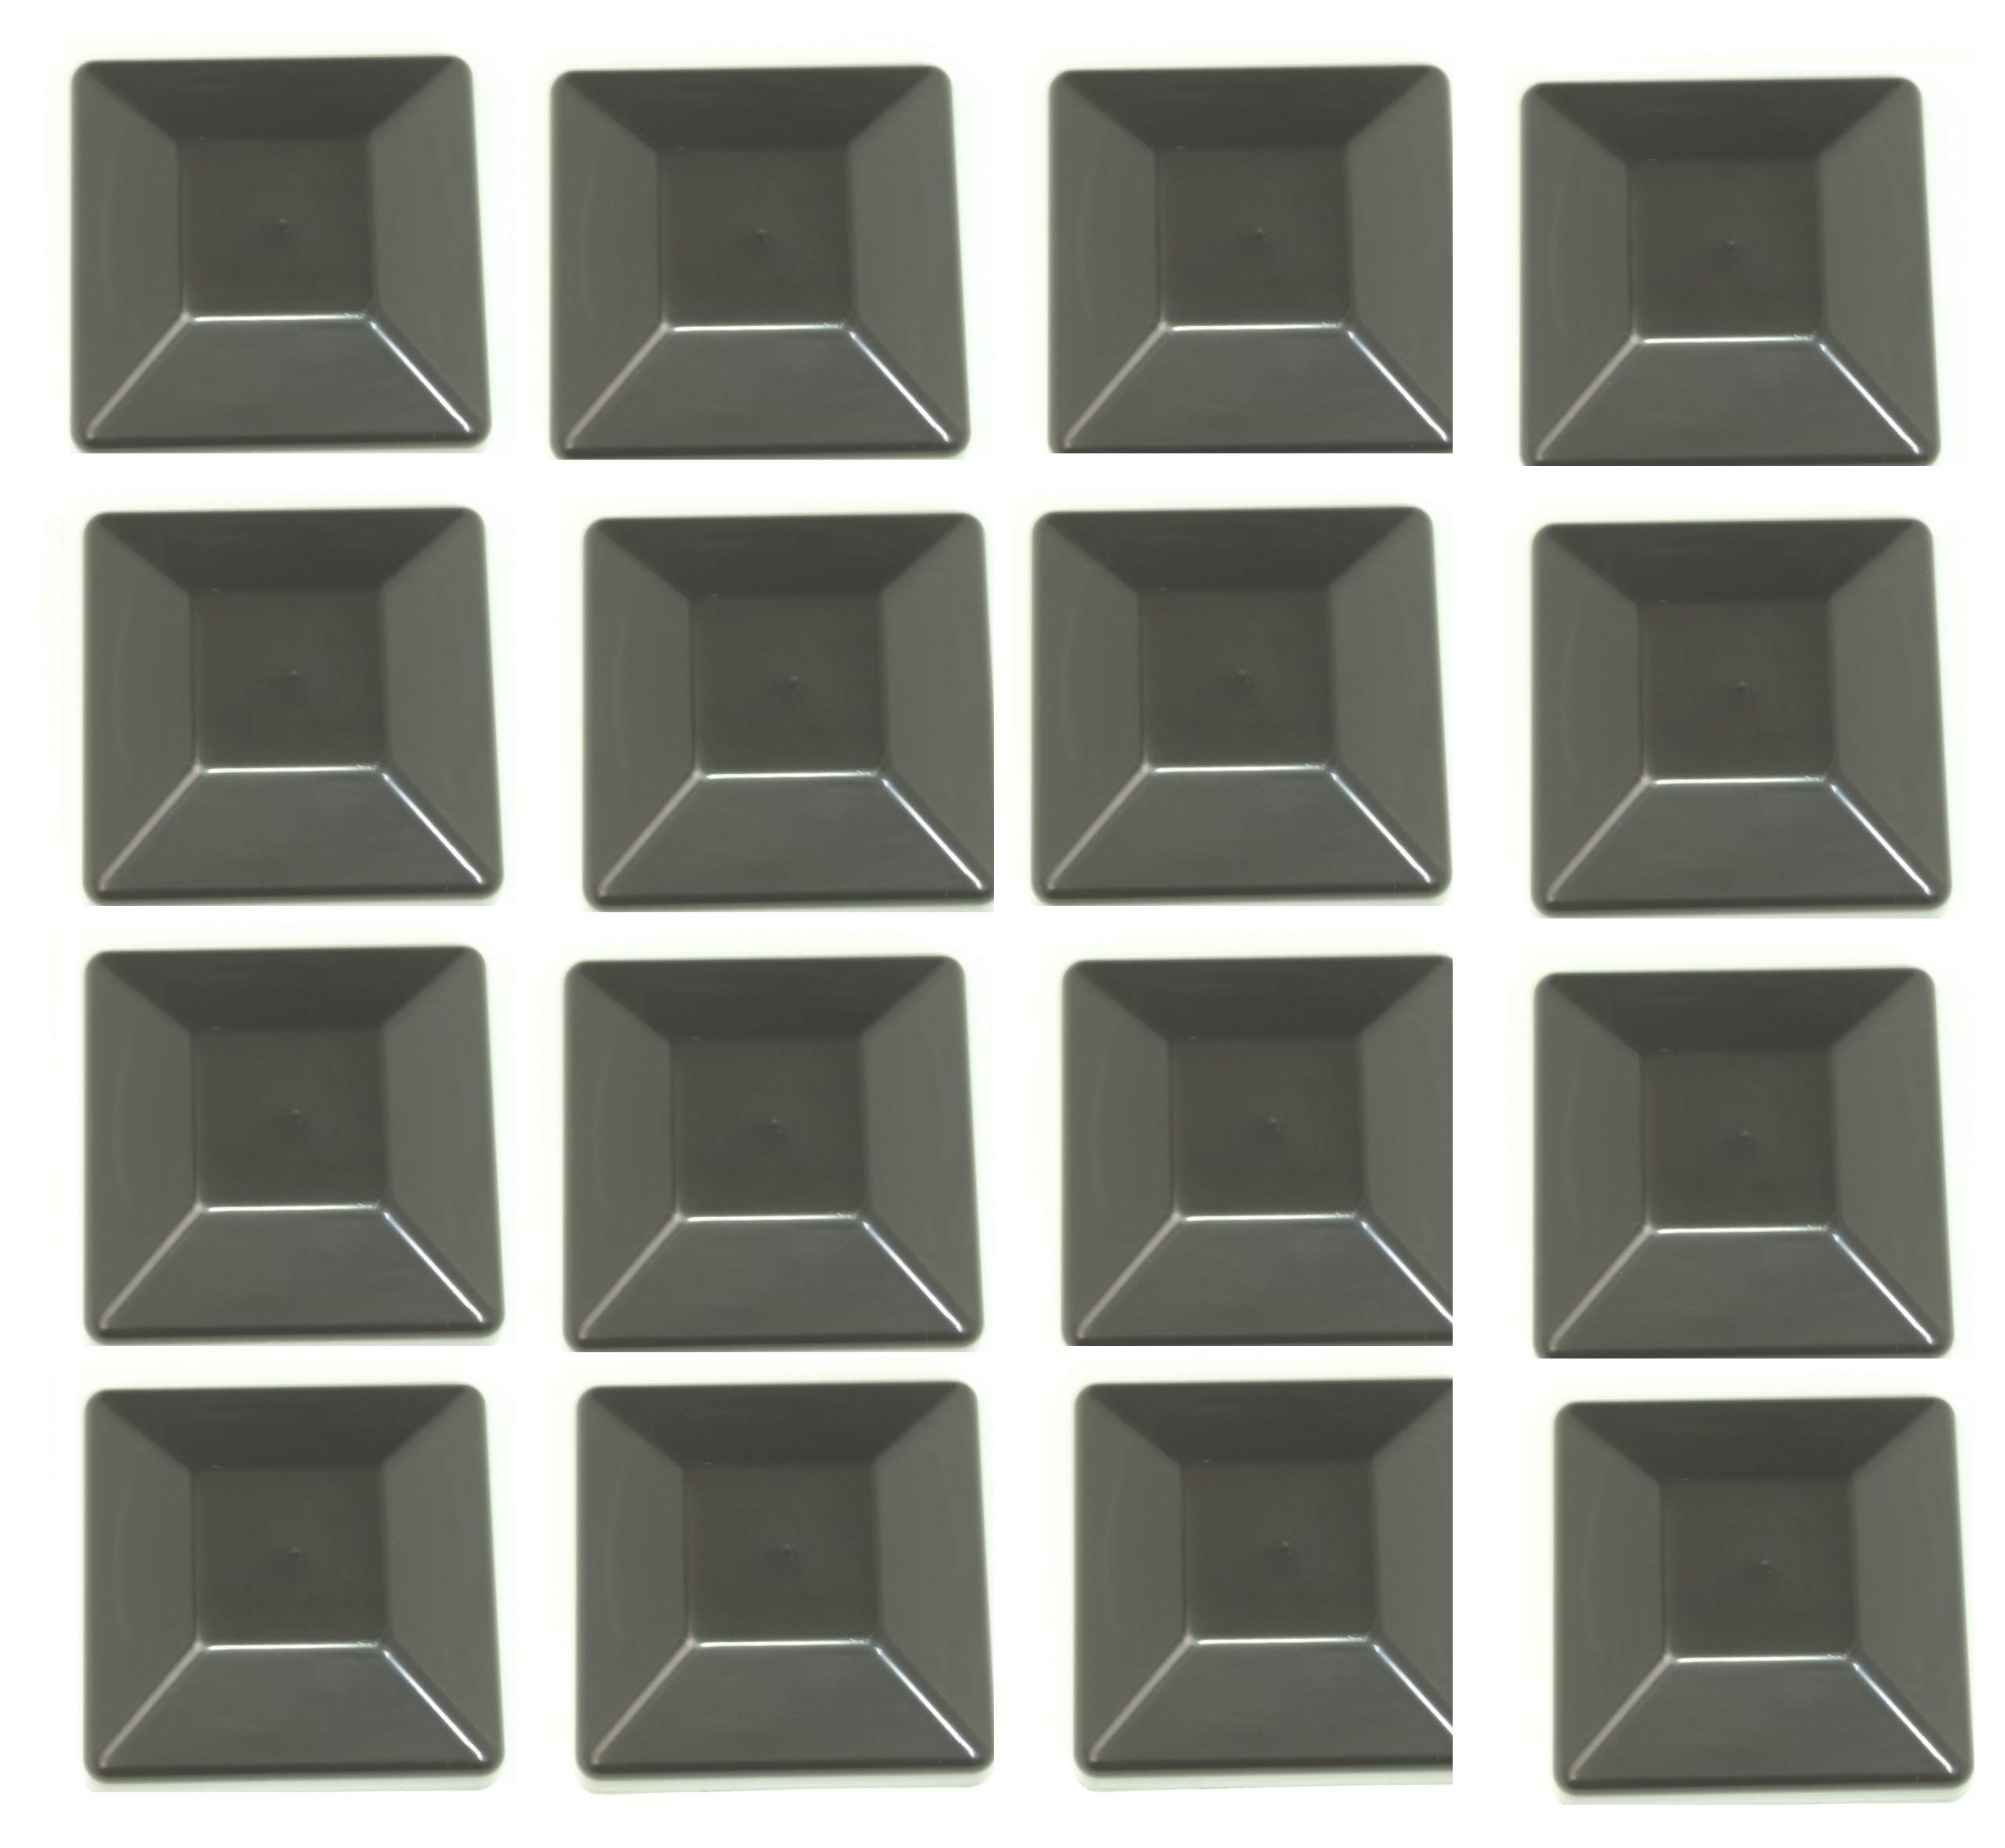 JSP Manufacturing 16 Pack Fence Post Plastic Black Caps 4X4 (3 5/8'') Pressure Treated Wood Made in USA by JSP Manufacturing